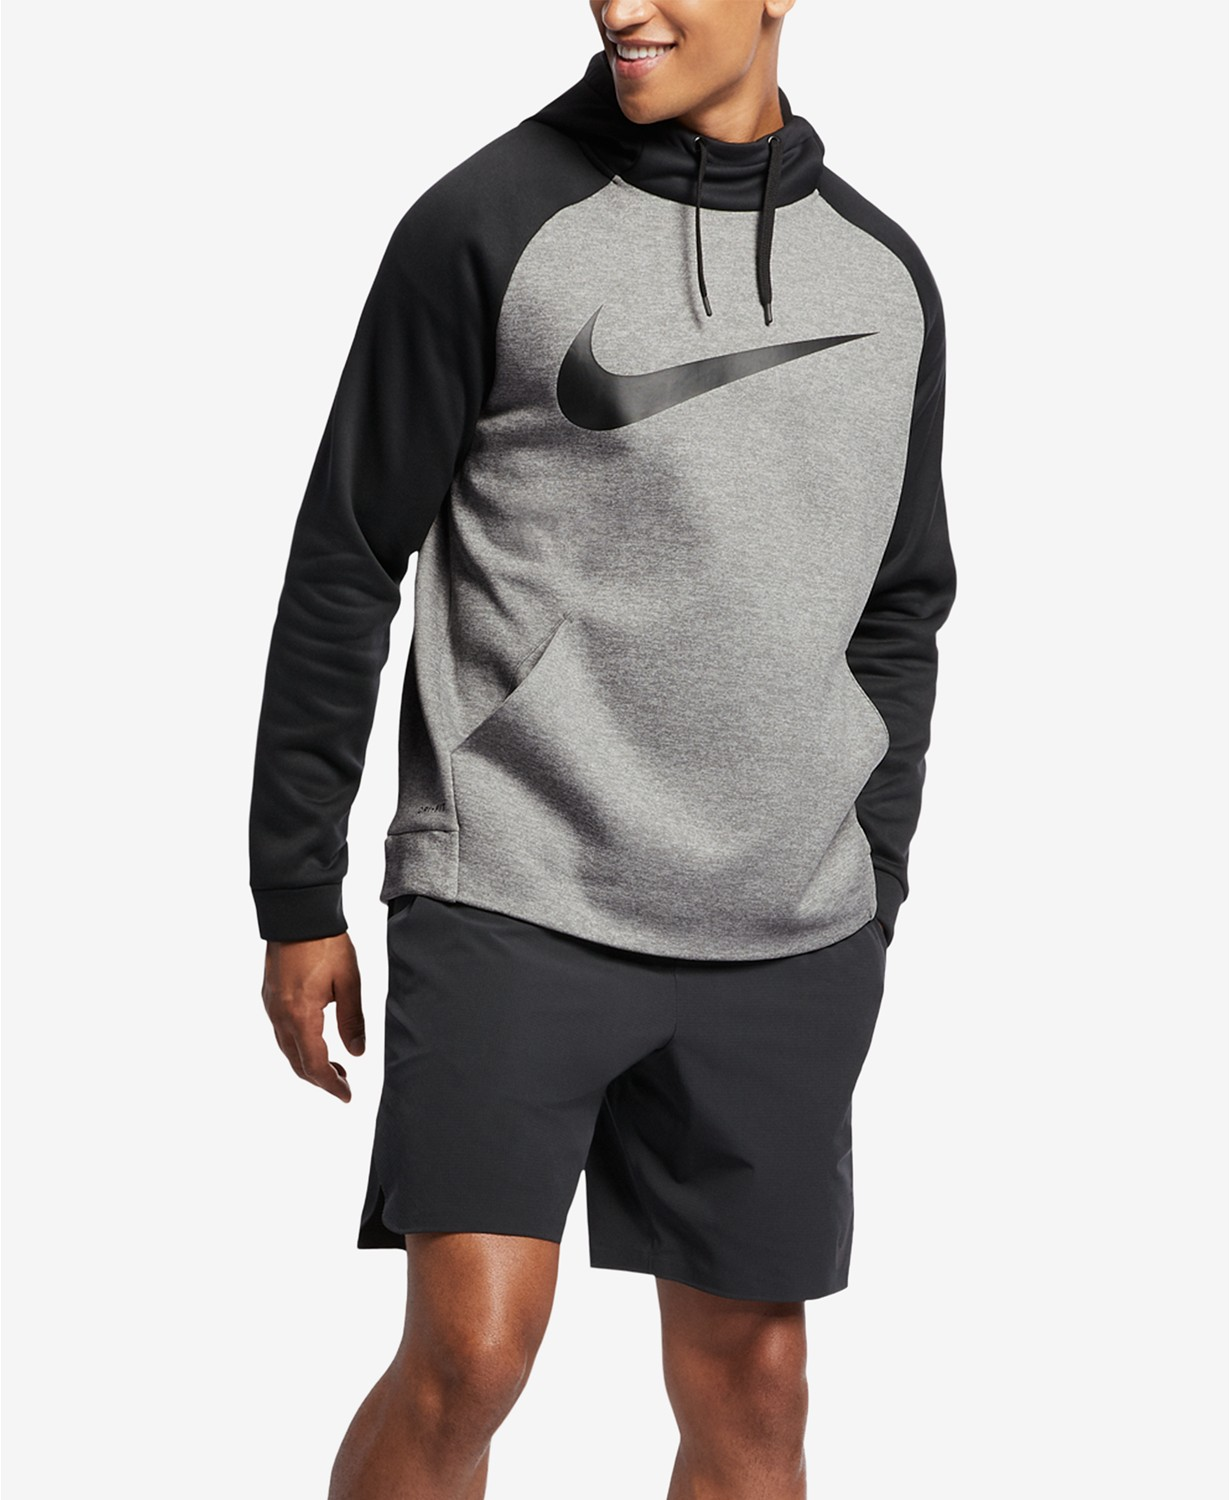 MACYS PRESIDENTS DAY SPECIAL! NIKE, ADIDAS, AND MORE MEN'S ACTIVE WEAR STARTING AT $24!